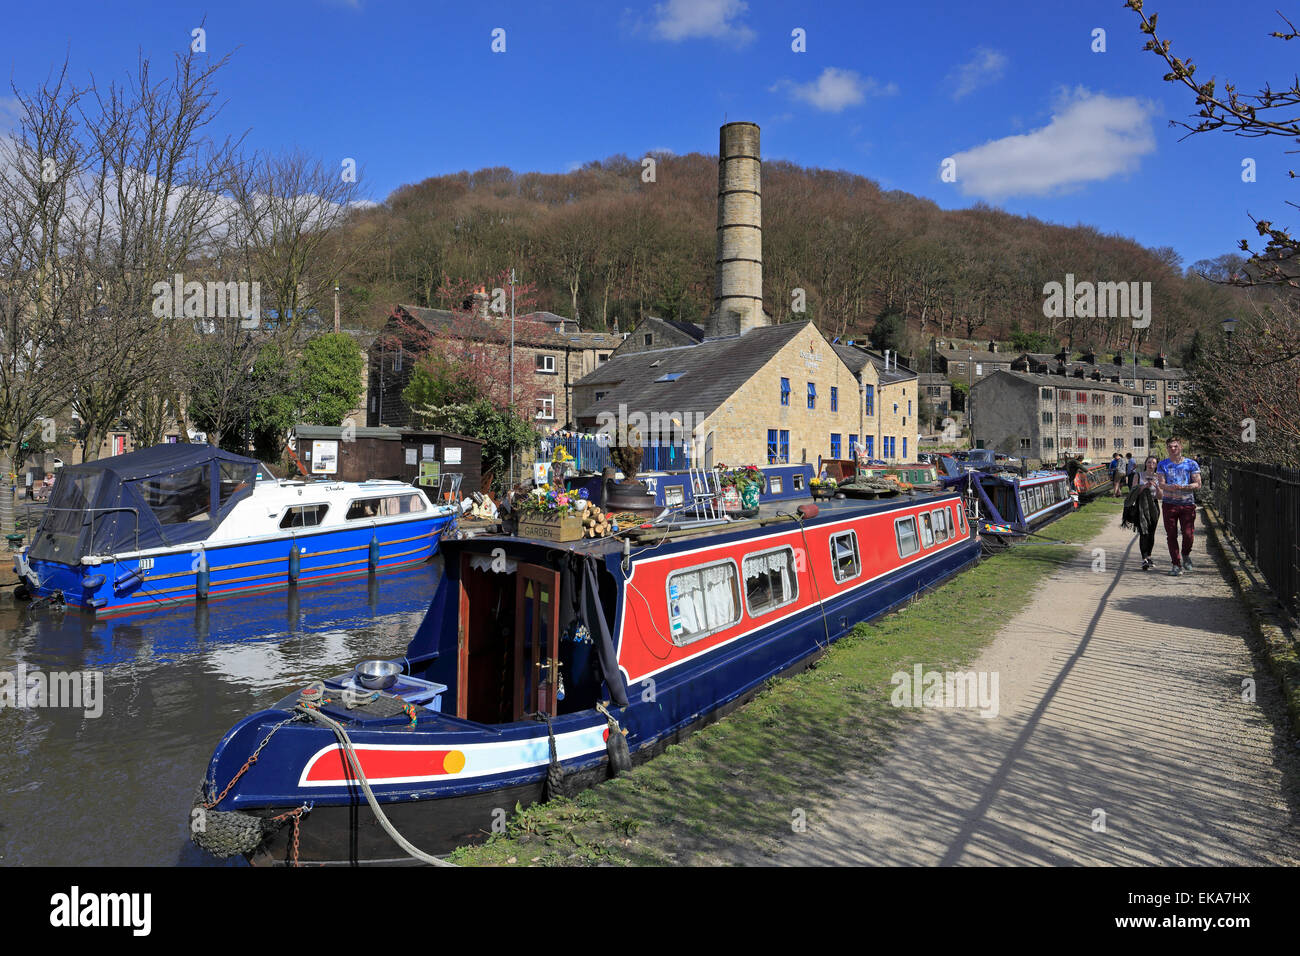 Narrow boats along the Rochdale Canal at Hebden Bridge, West Yorkshire, England, UK. - Stock Image